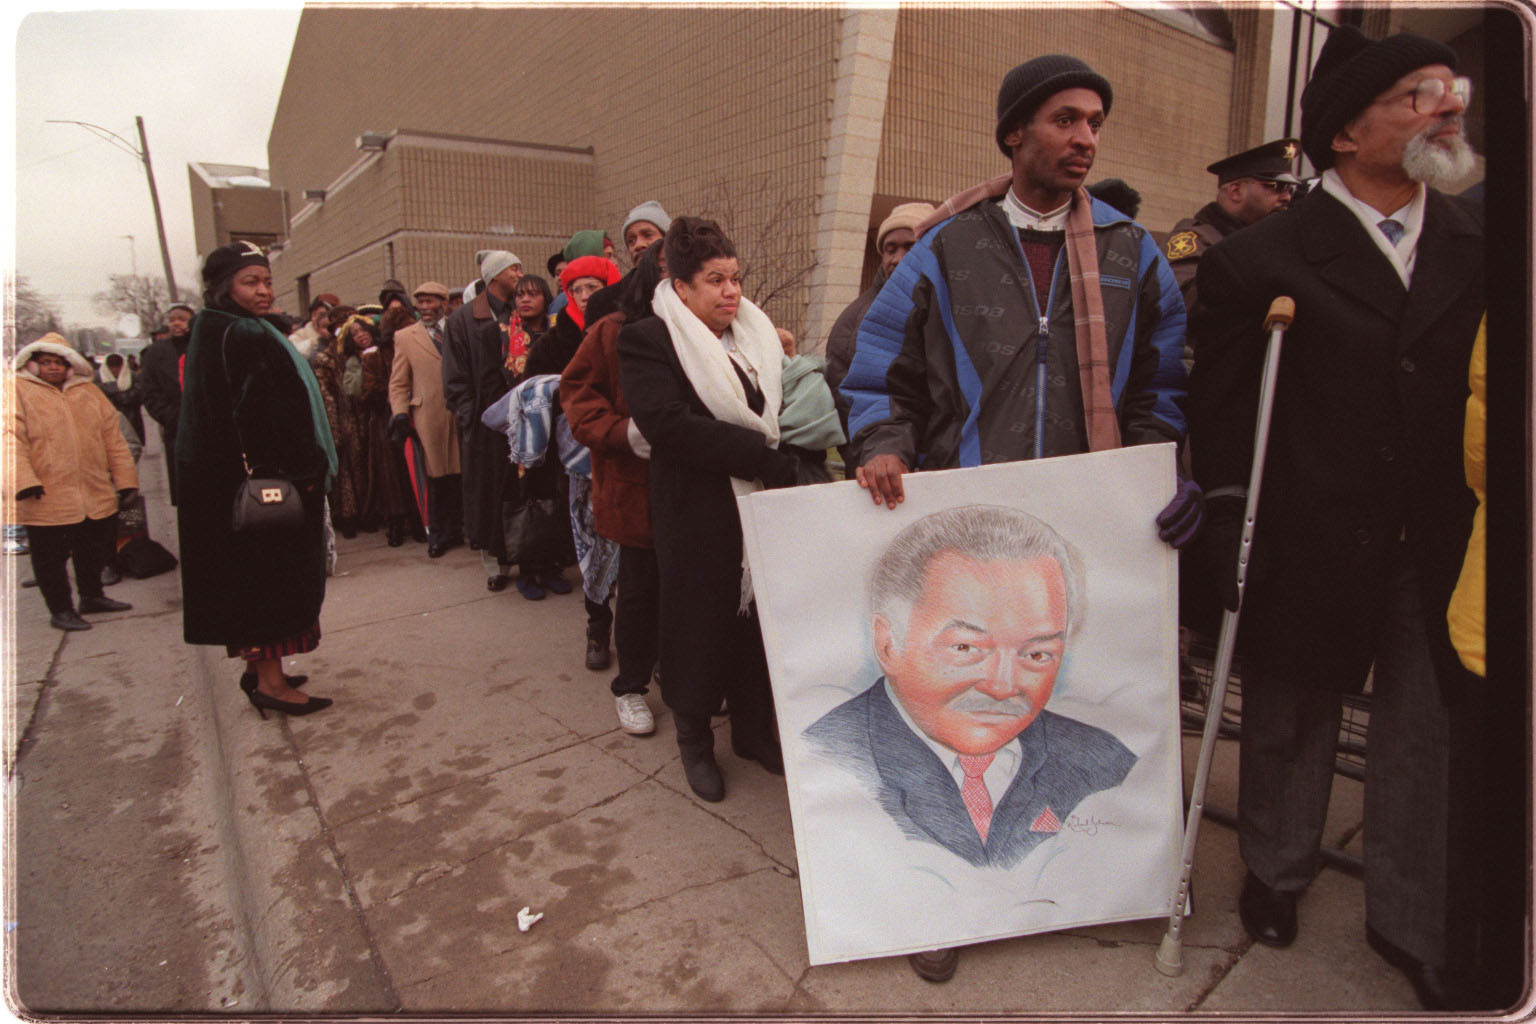 Early on Friday, December 5, 1997, people began lining up early around Greater Grace Temple to get a seat for Coleman Young's funeral. Young died of complications from emphysema at the age of 79, after wrapping up his two-decade career as mayor of Detroit several years earlier.  Courtesy of the Detroit Free Press.